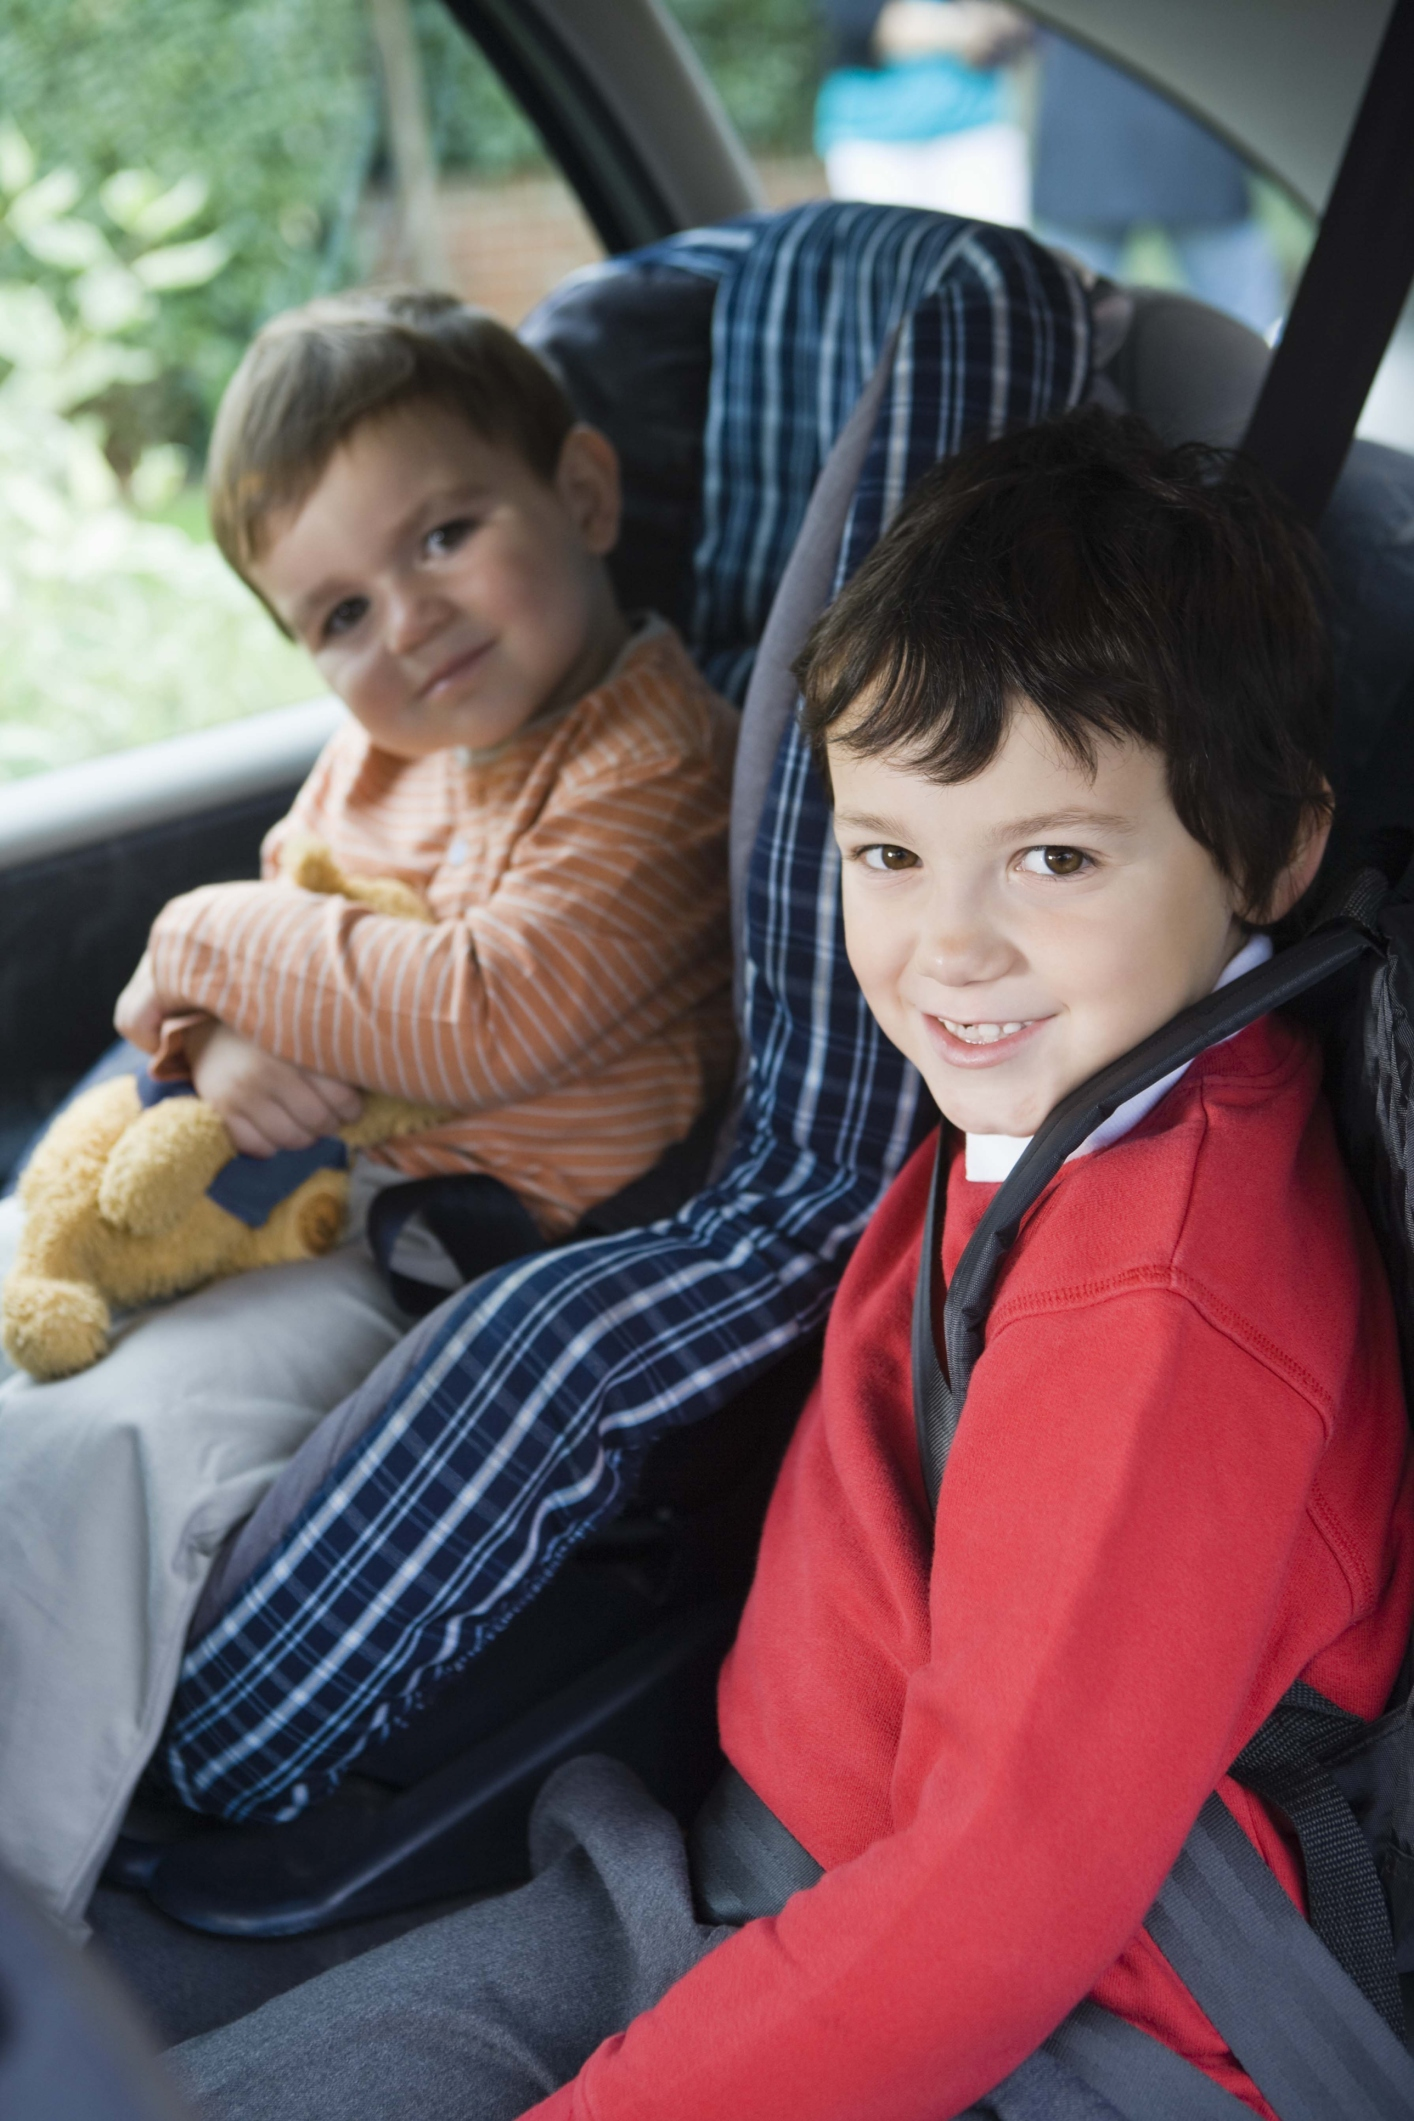 Car Safety Seat Laws In Illinois